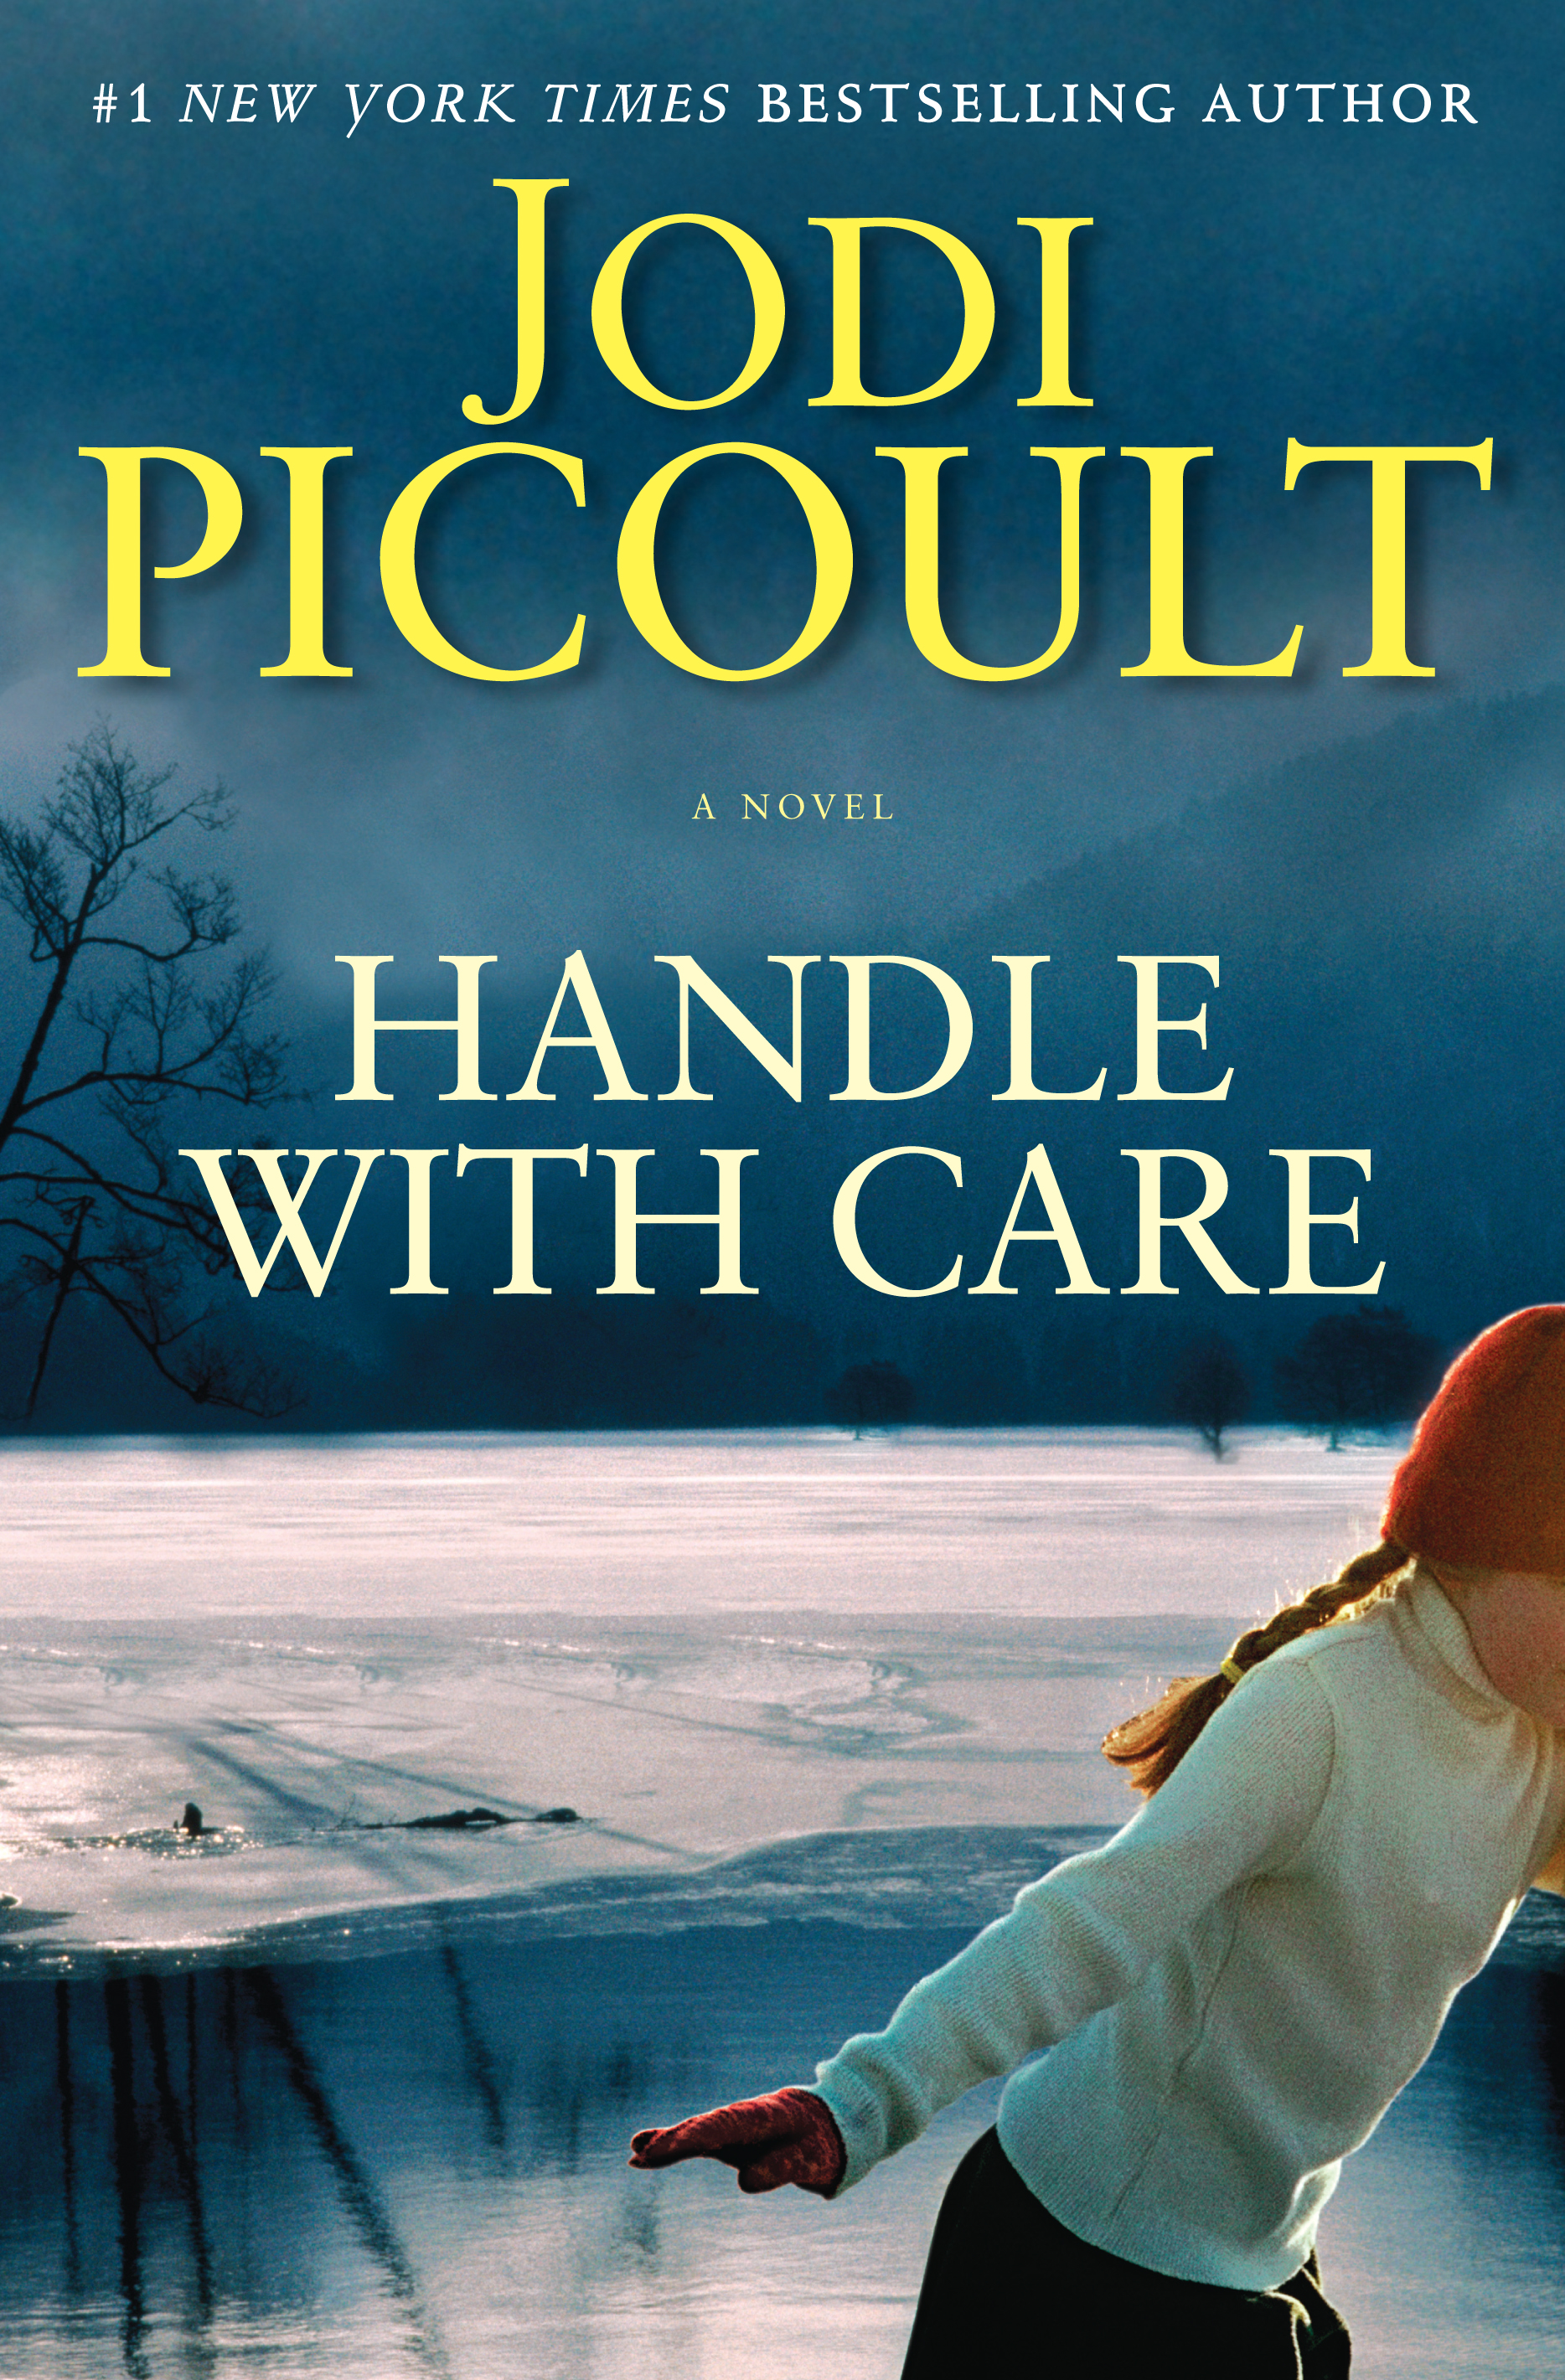 Jodi picoult official publisher page simon schuster canada book cover image jpg handle with care fandeluxe Gallery